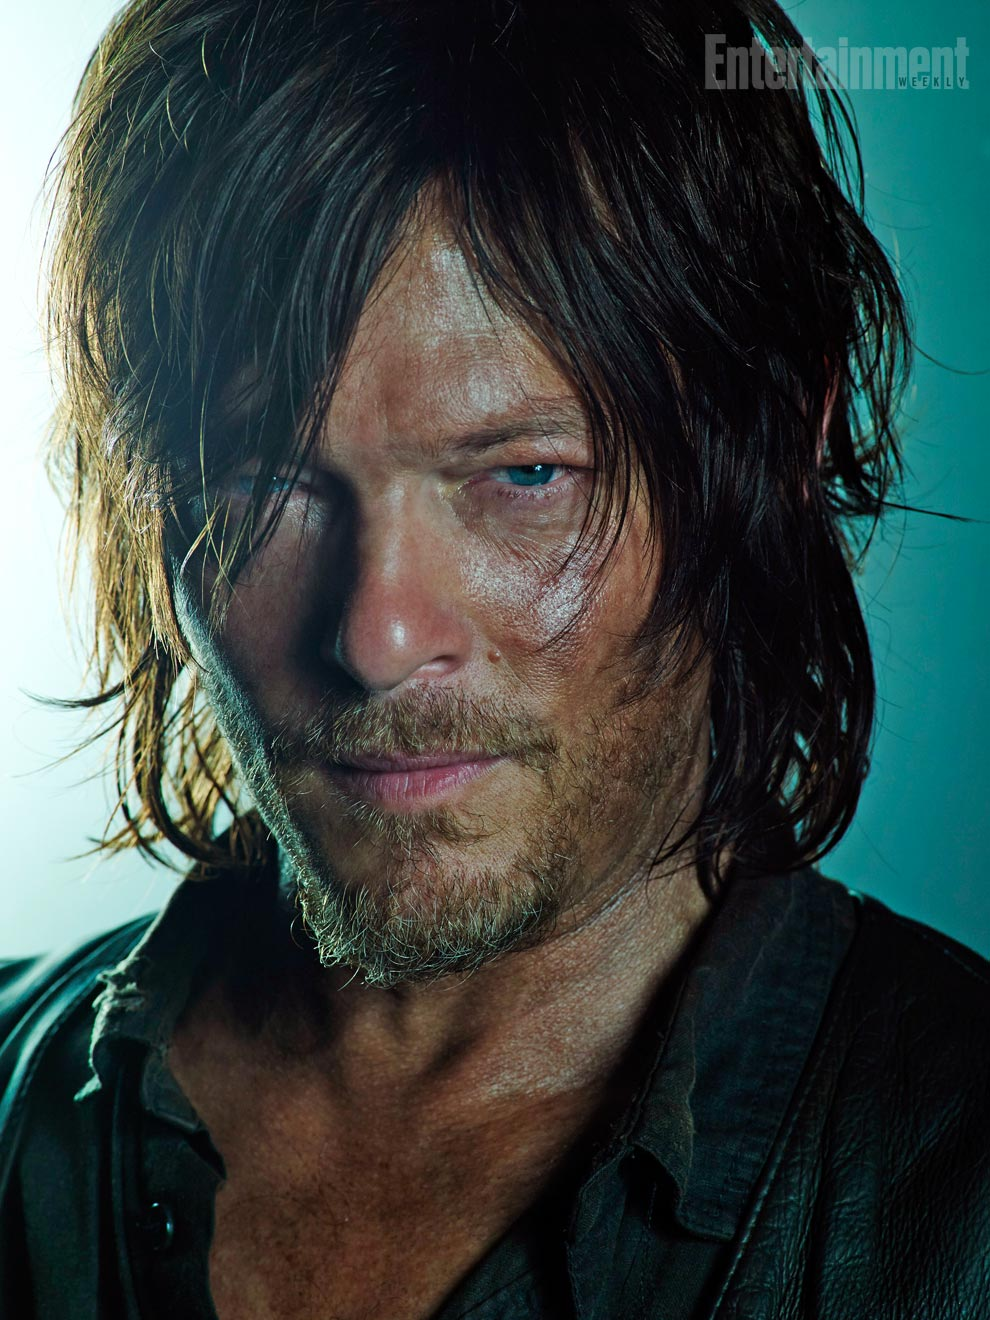 Norman-Reedus - Daryl - The Walking Dead, Season 5, second half